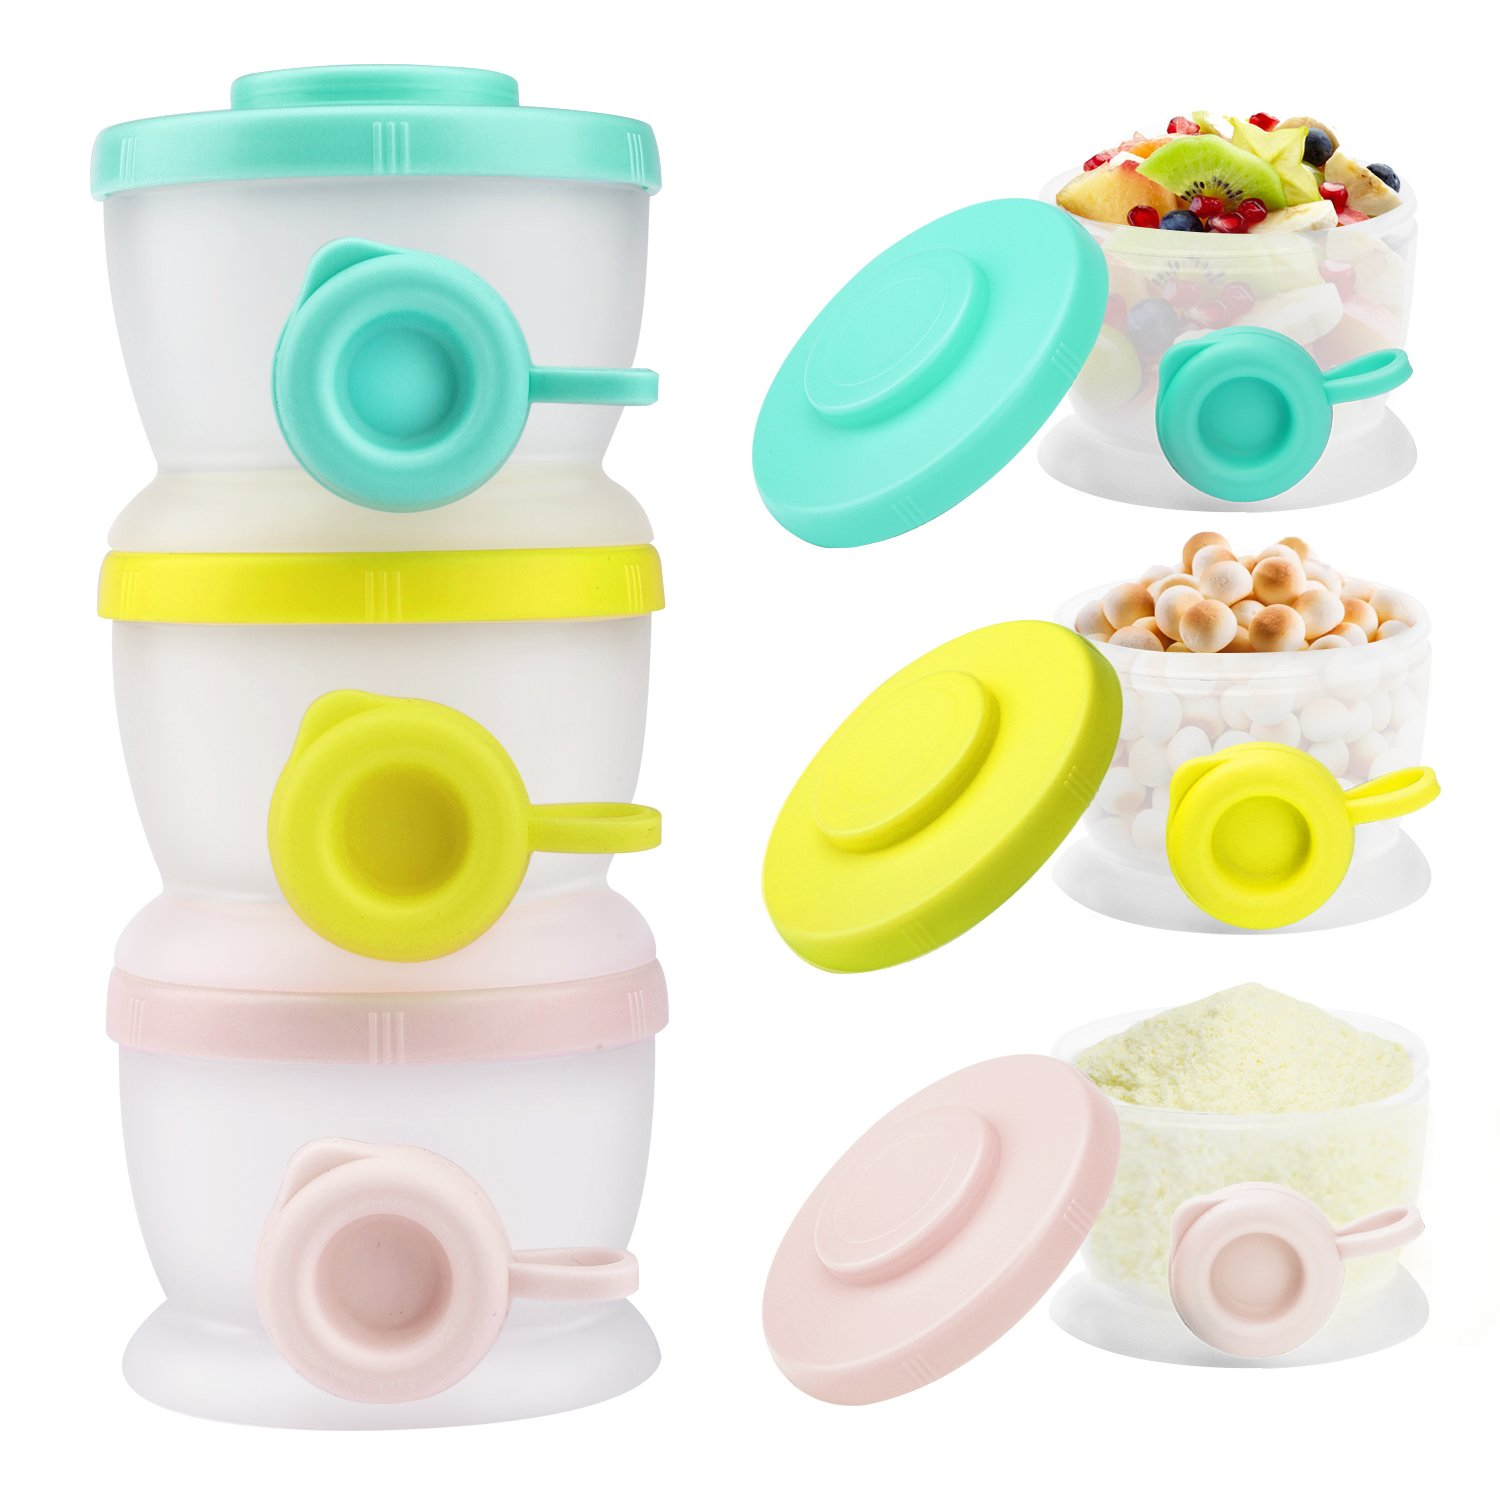 Zooawa Baby Formula Dispenser, Non-Spill Stackable Milk Powder Formula Container and Snack Storage for Travel, BPA Free, 3 Compartment, Light Color